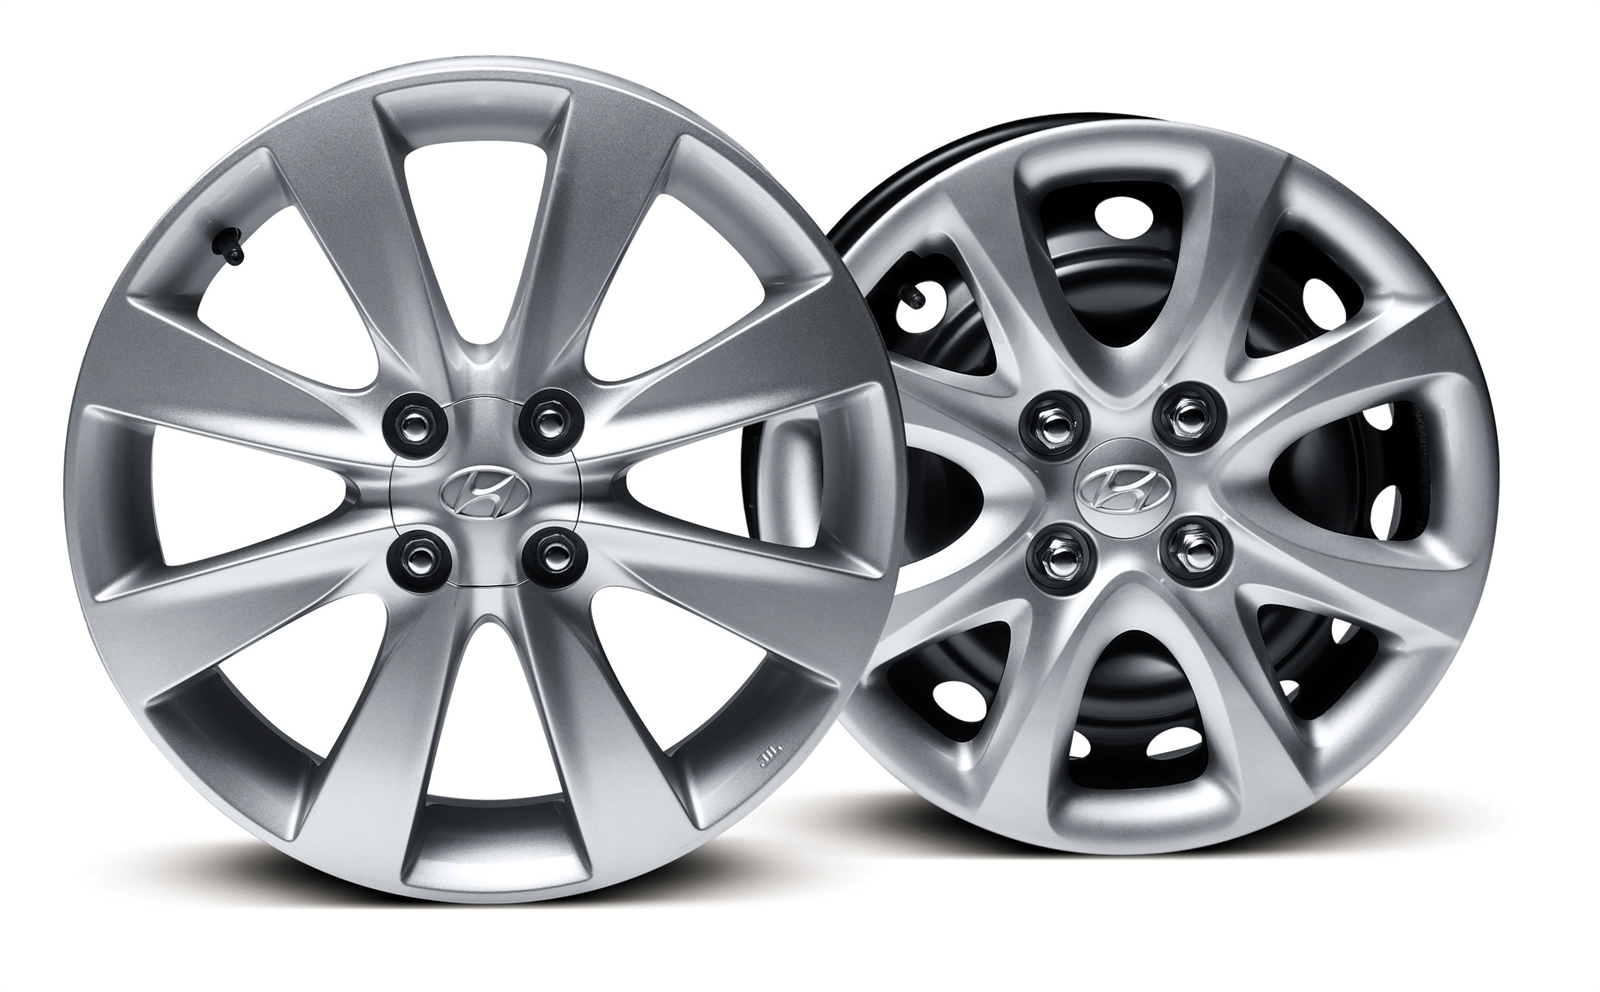 2013 Hyundai Accent Tire Size >> 2013 Hyundai Accent Tire Size Top New Car Release Date